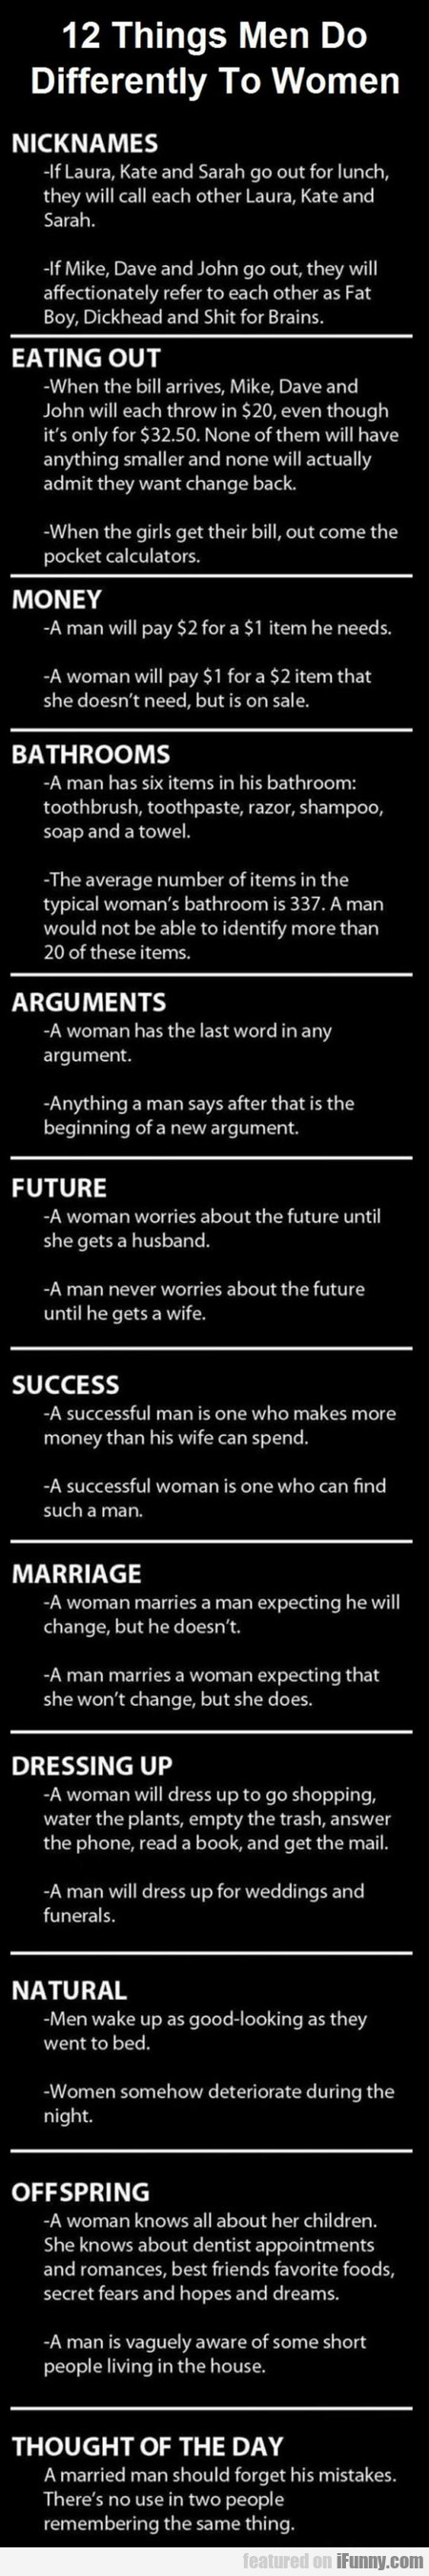 12 Things Men Do Differently To Women